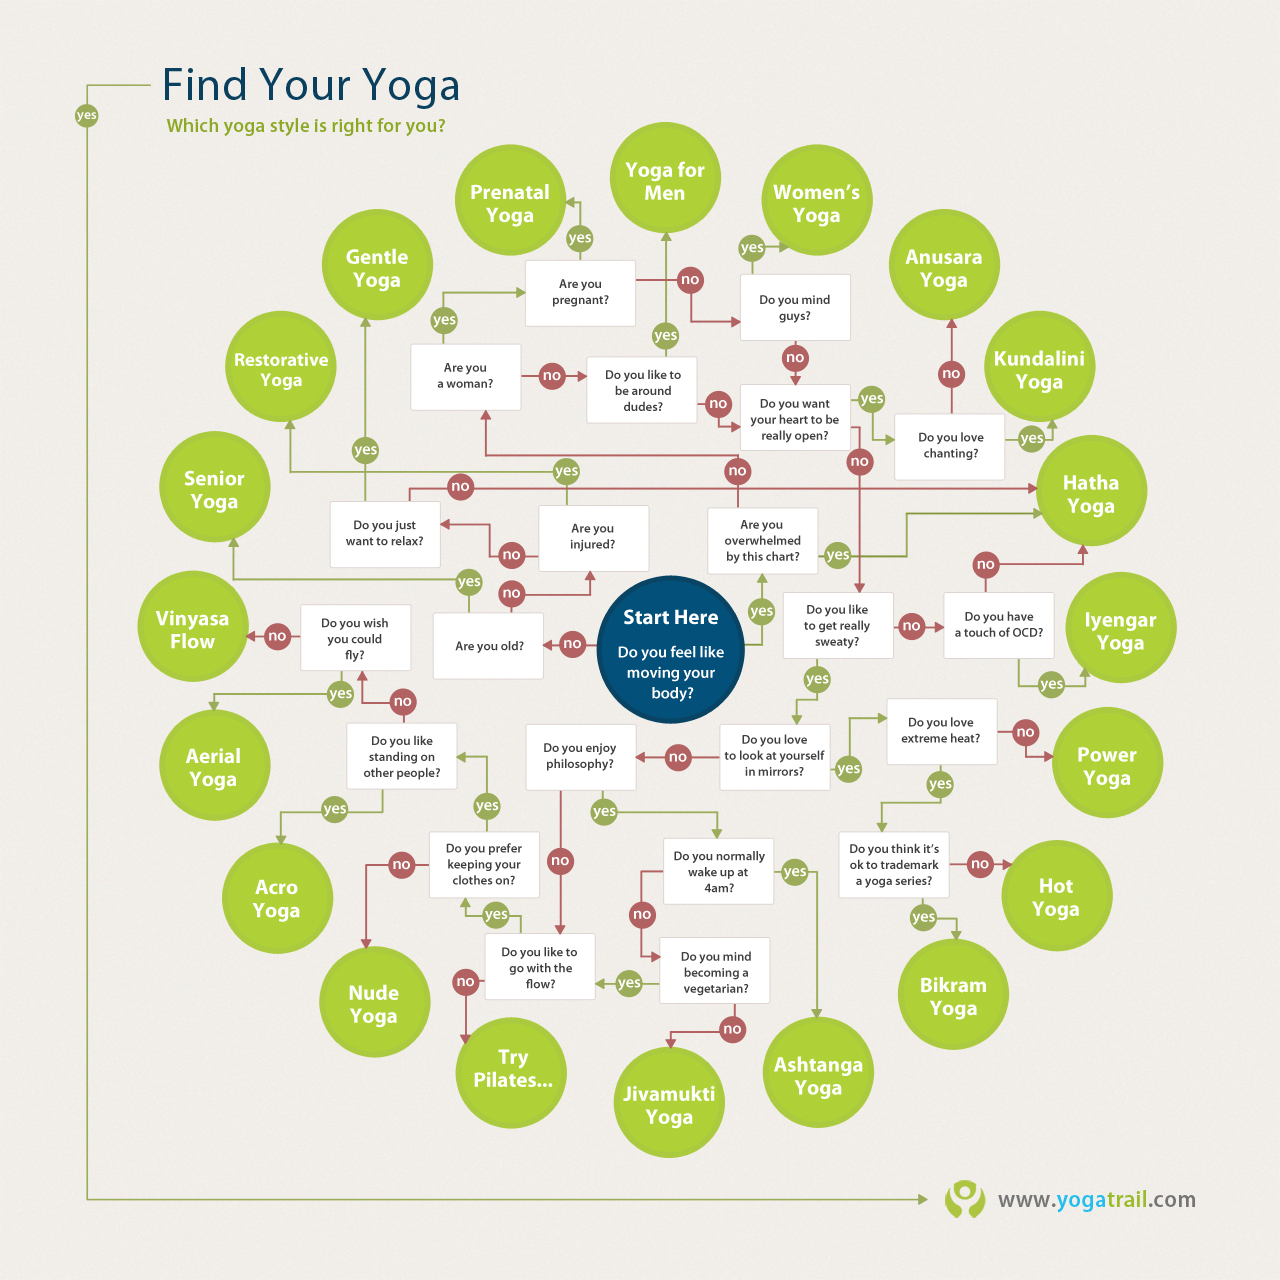 Find your yoga style infographic finding drishti images geenschuldenfo Images